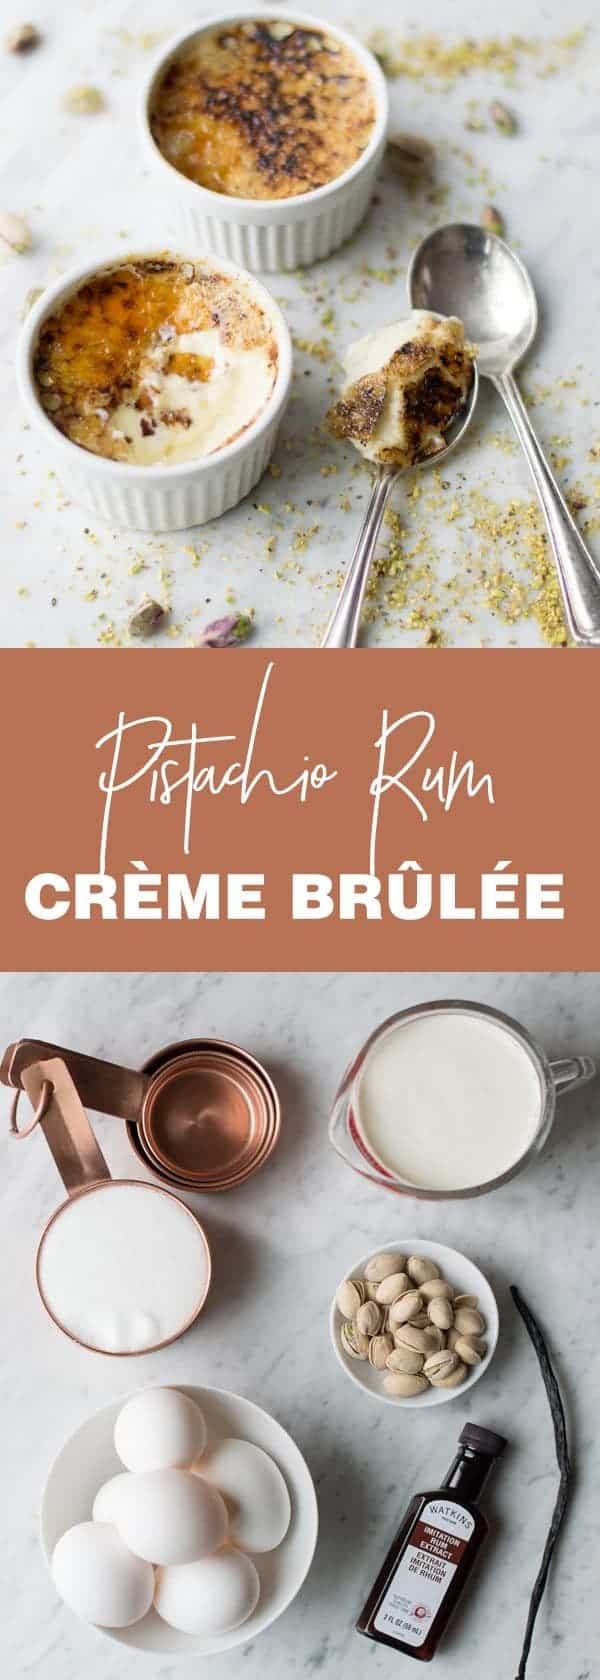 Pistachio Creme Brulee knocks ordinary creme brulee out of the park. A must try!